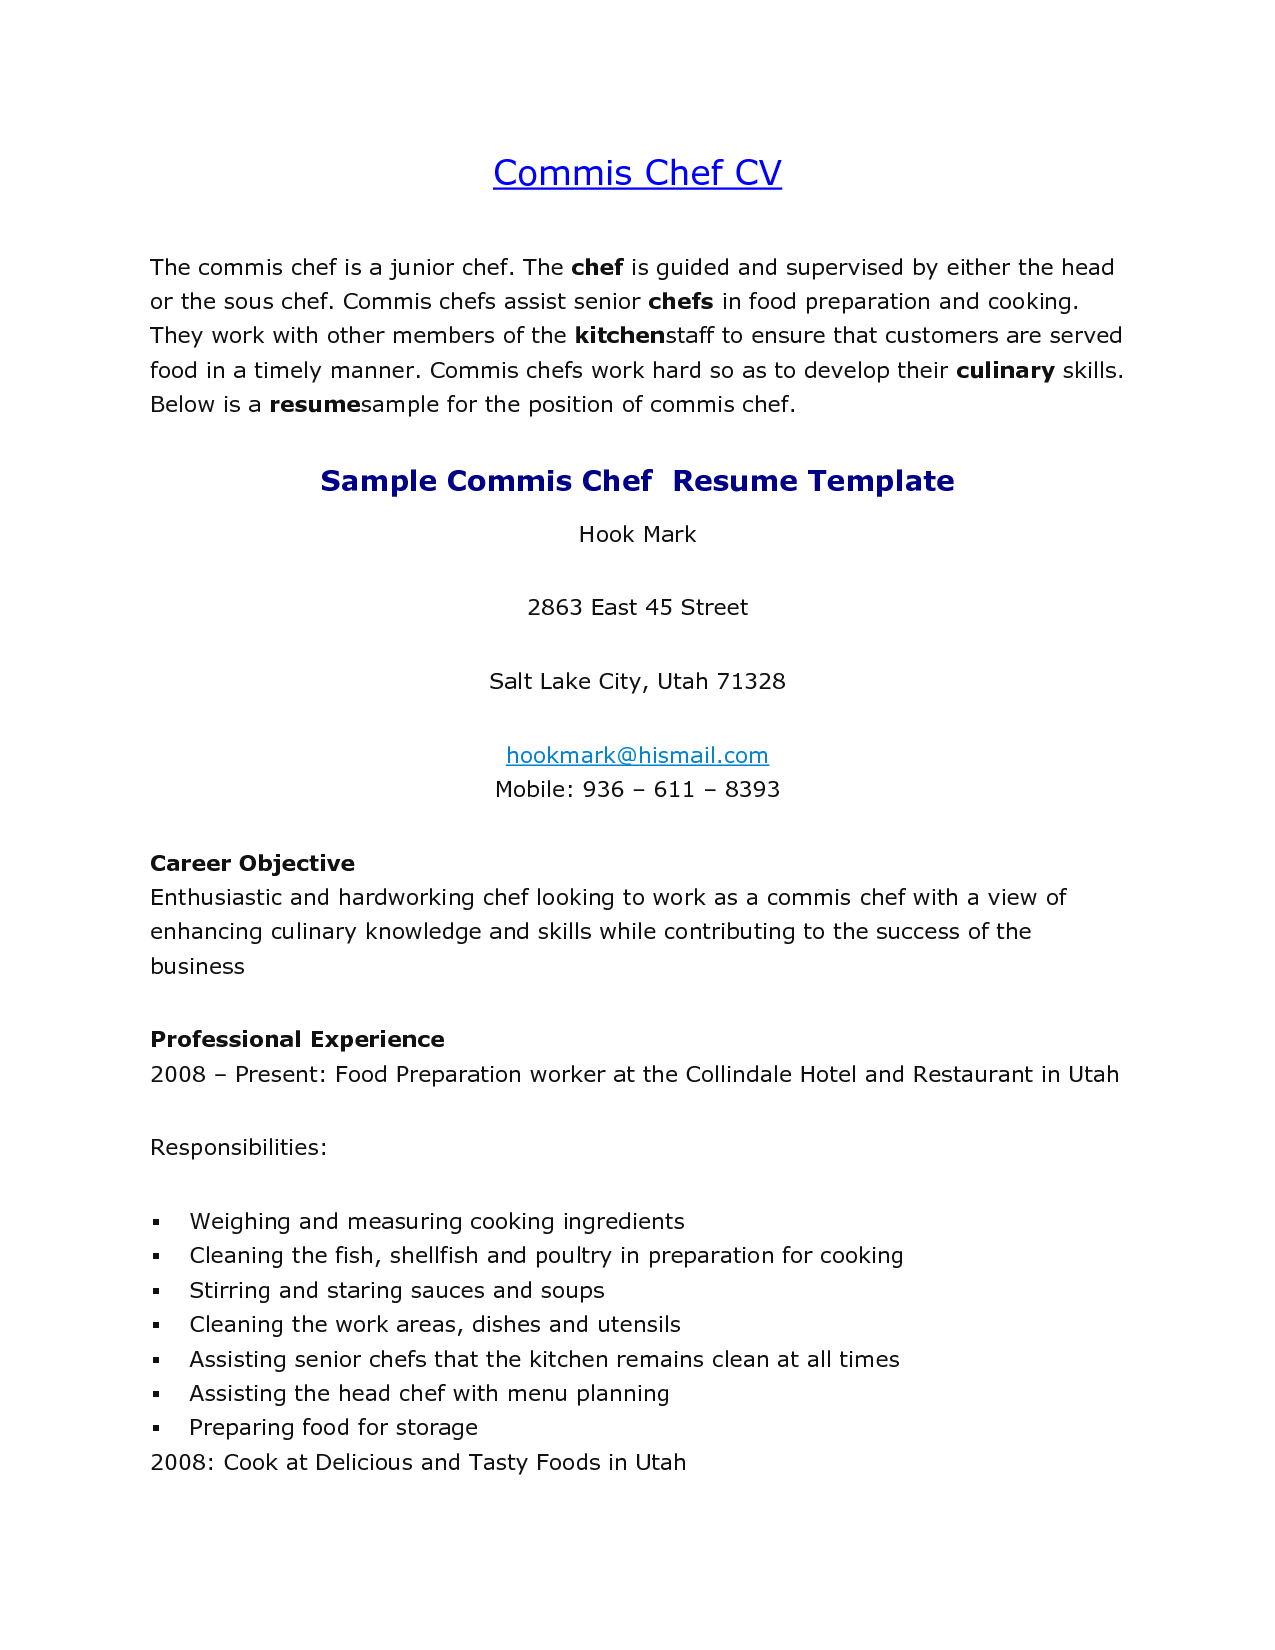 Cover Letter Sample For Commis Chef - 100+ Cover Letter ...